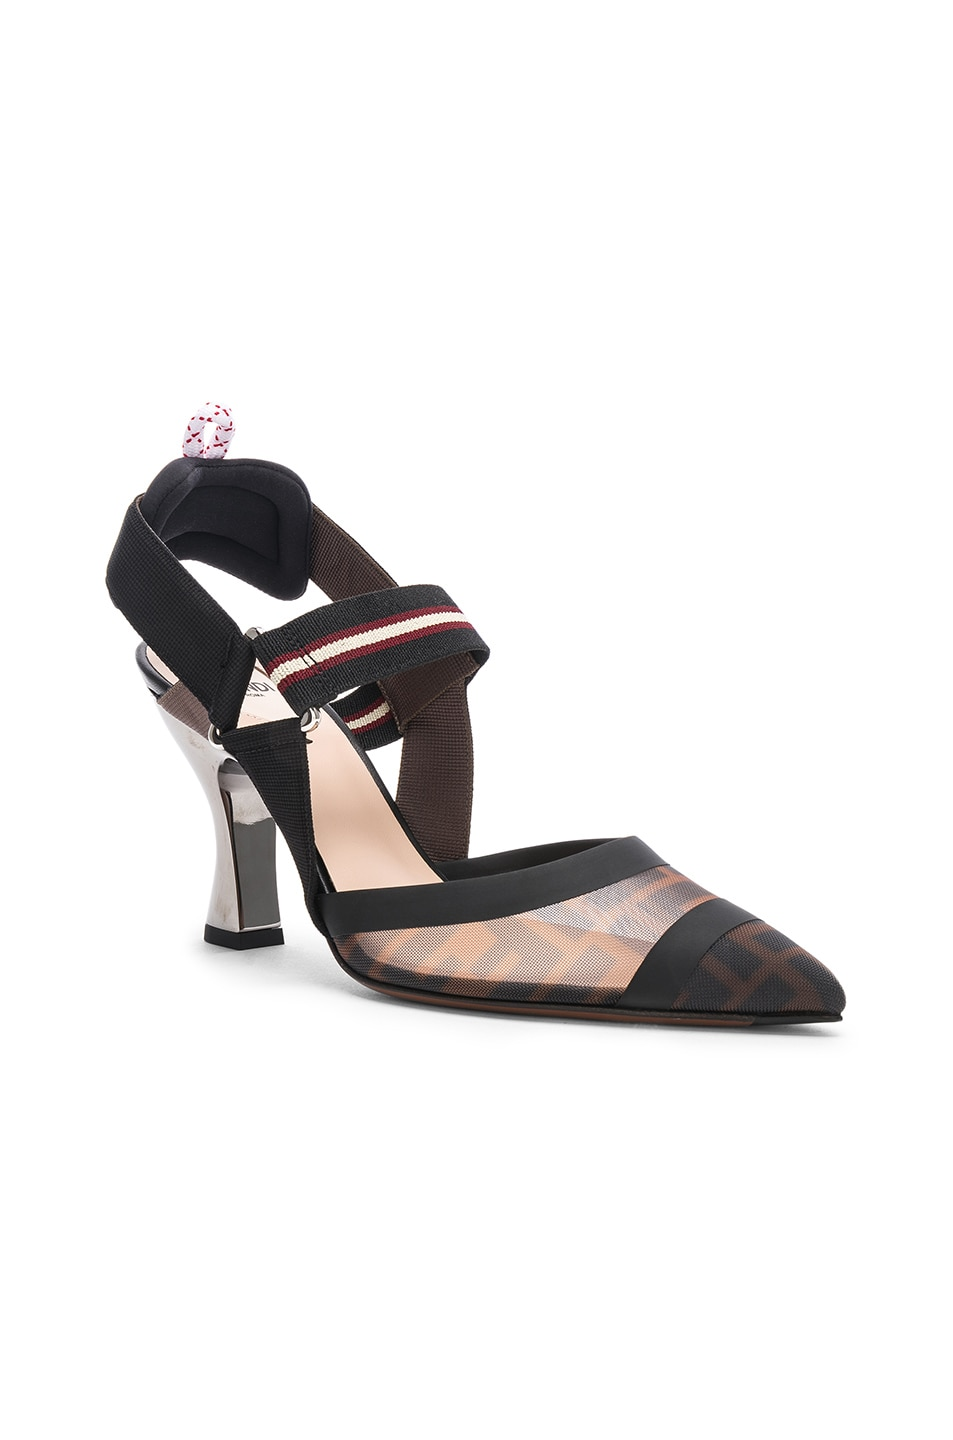 Image 2 of Fendi Colibri Slingback Heels in Black